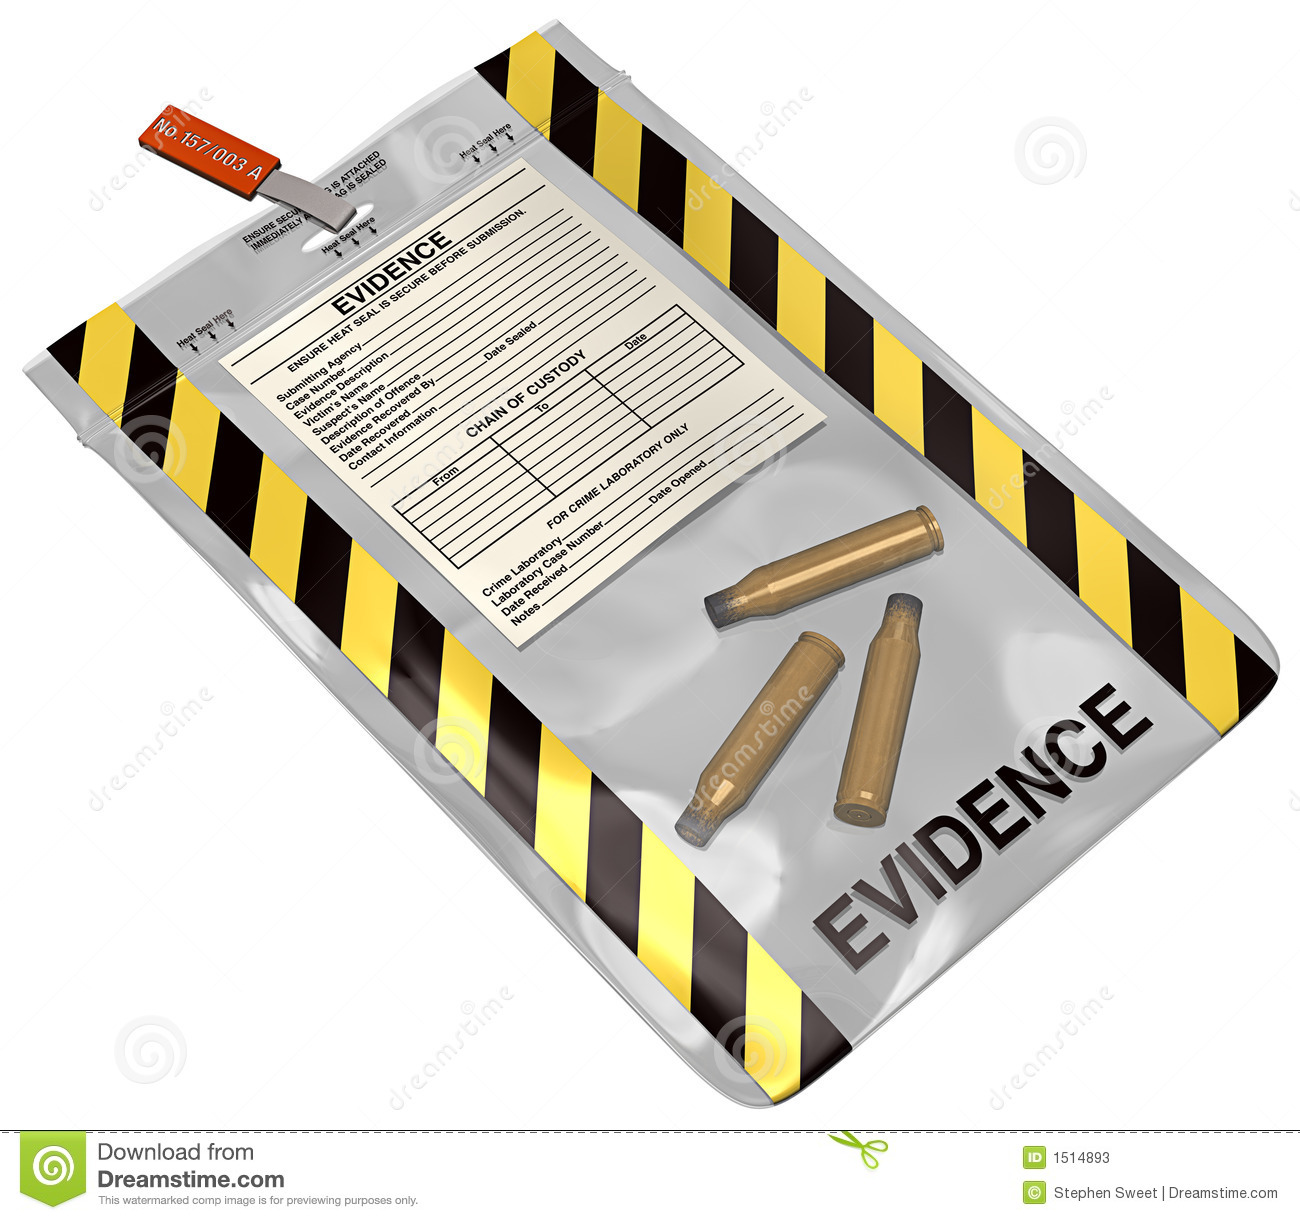 evidence bag stock photos image 1514893 gavel clipart black and white gavel clipart for meetings